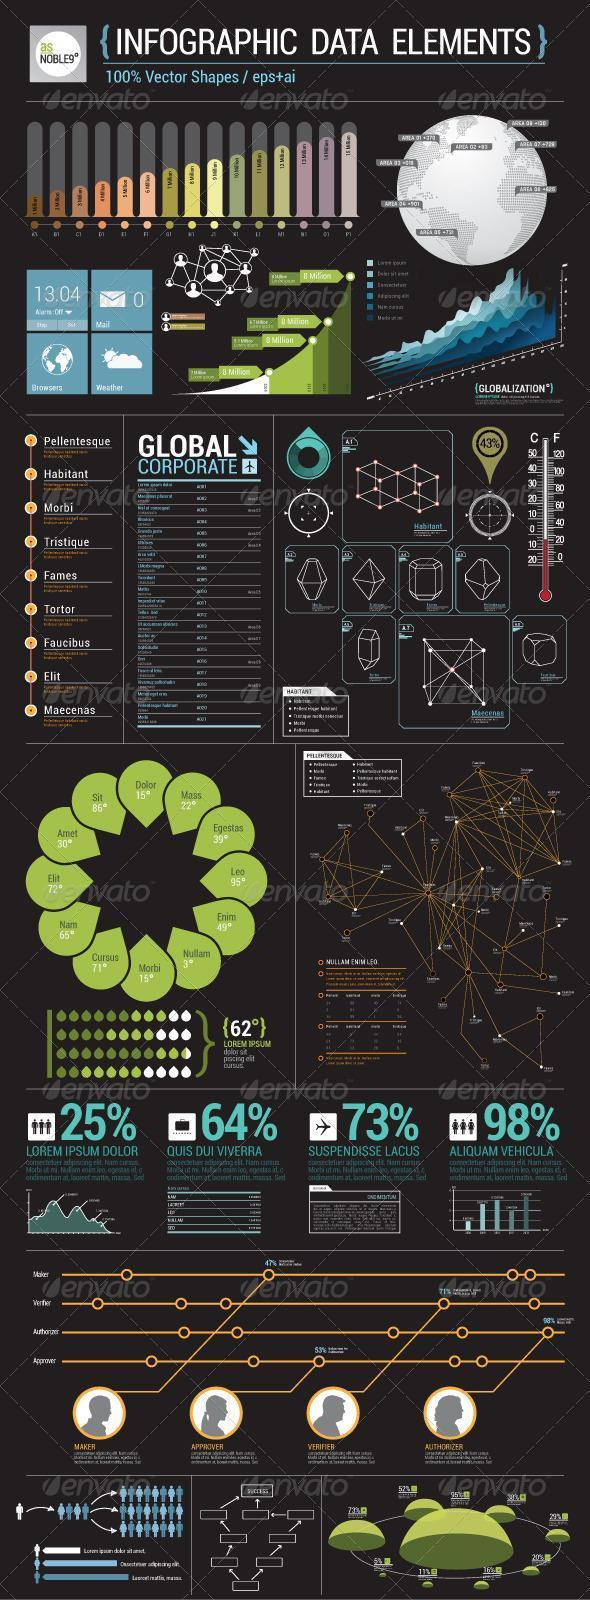 Infographic Data Elements Template